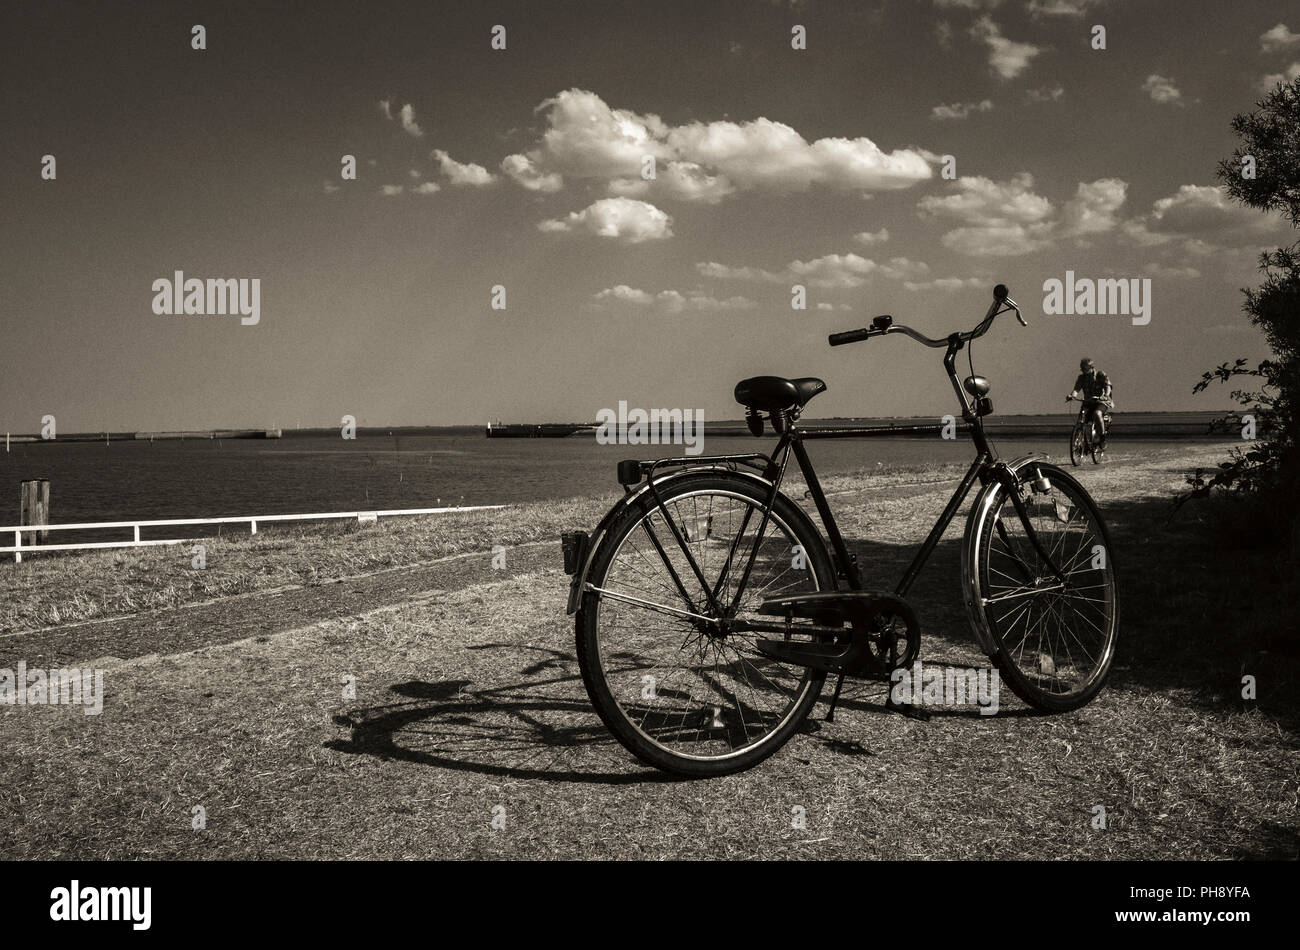 Wwii Bicycle Stock Photos & Wwii Bicycle Stock Images - Alamy